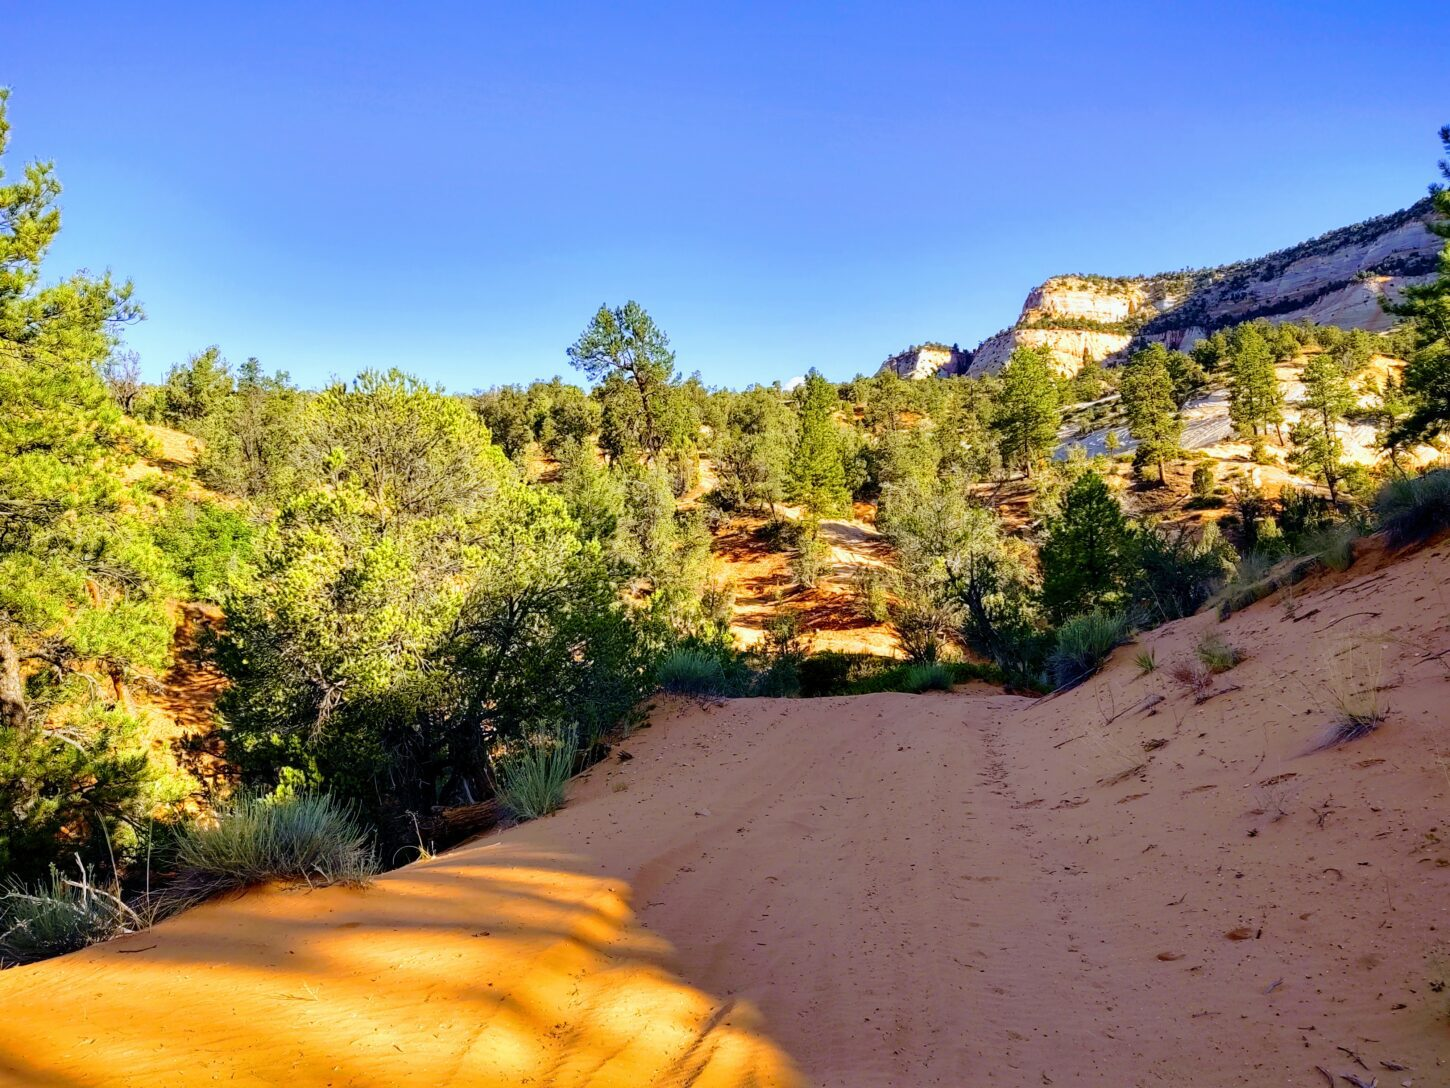 The ATV trail east zion